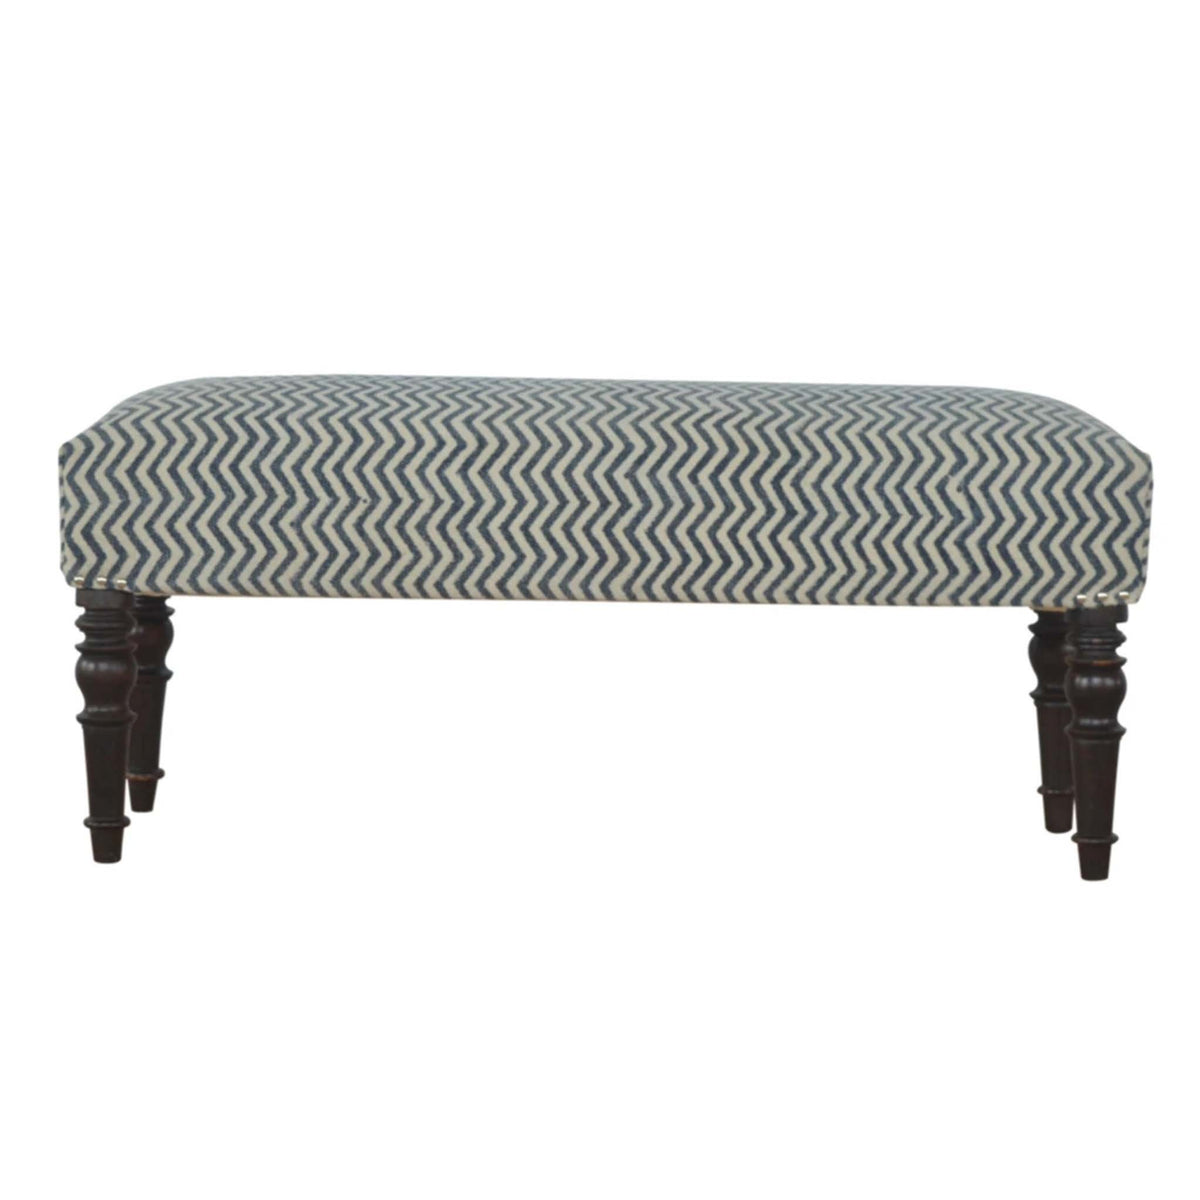 Durrie Bench by Roseland Furniture